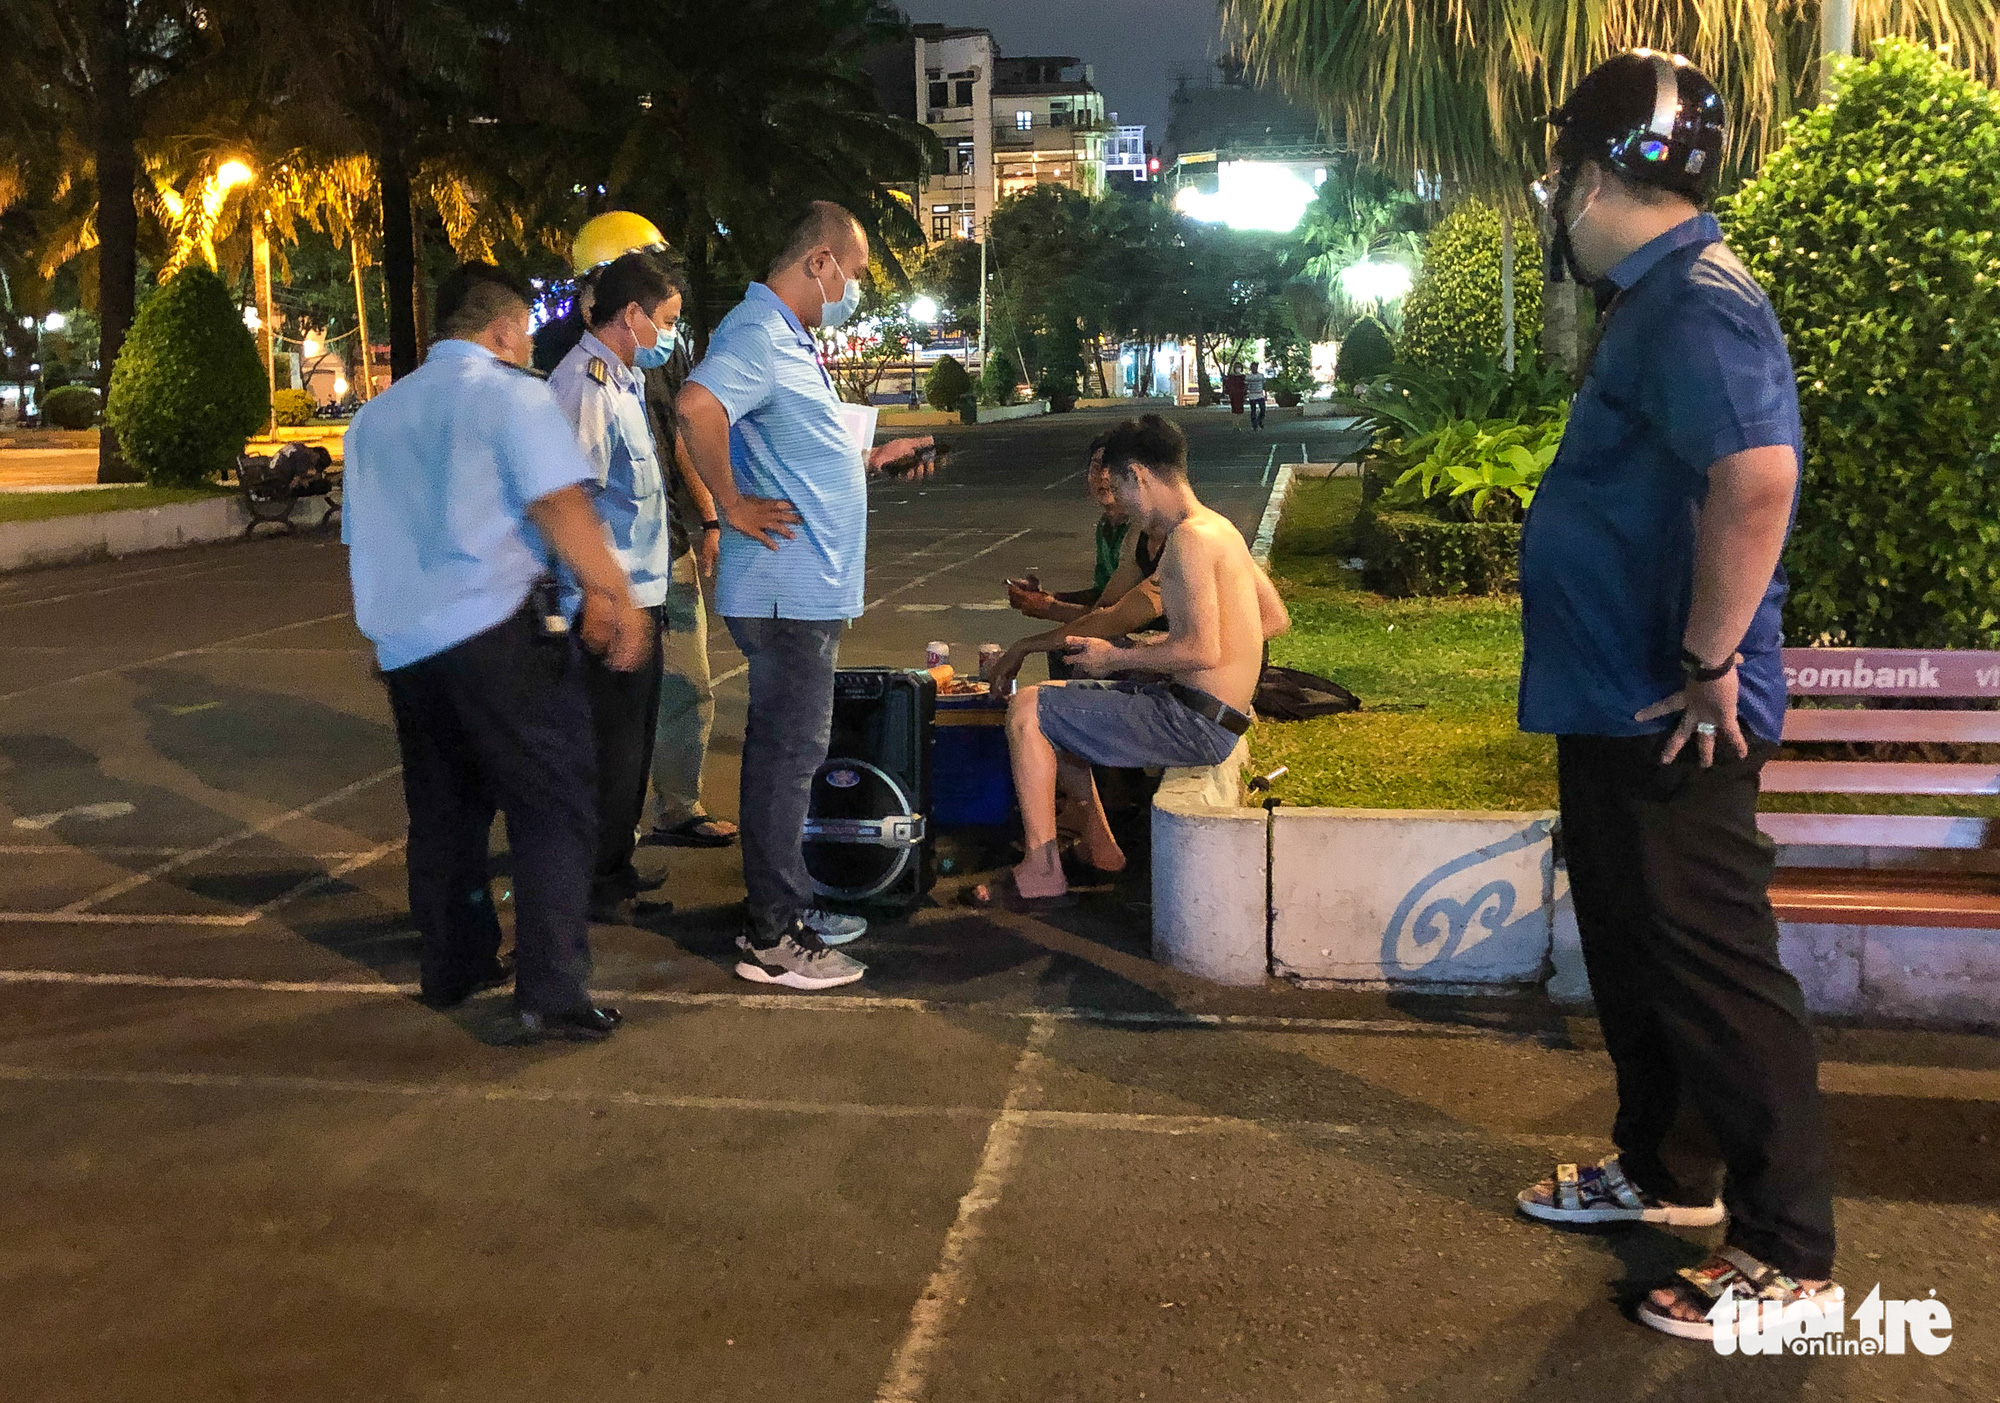 Officials remind a group to turn off their portable loudspeader, which they used for singing, at the September 23 Park in Ho Chi Minh City, Vietnam, March 20, 2021. Photo: Chau Tuan / Tuoi Tre